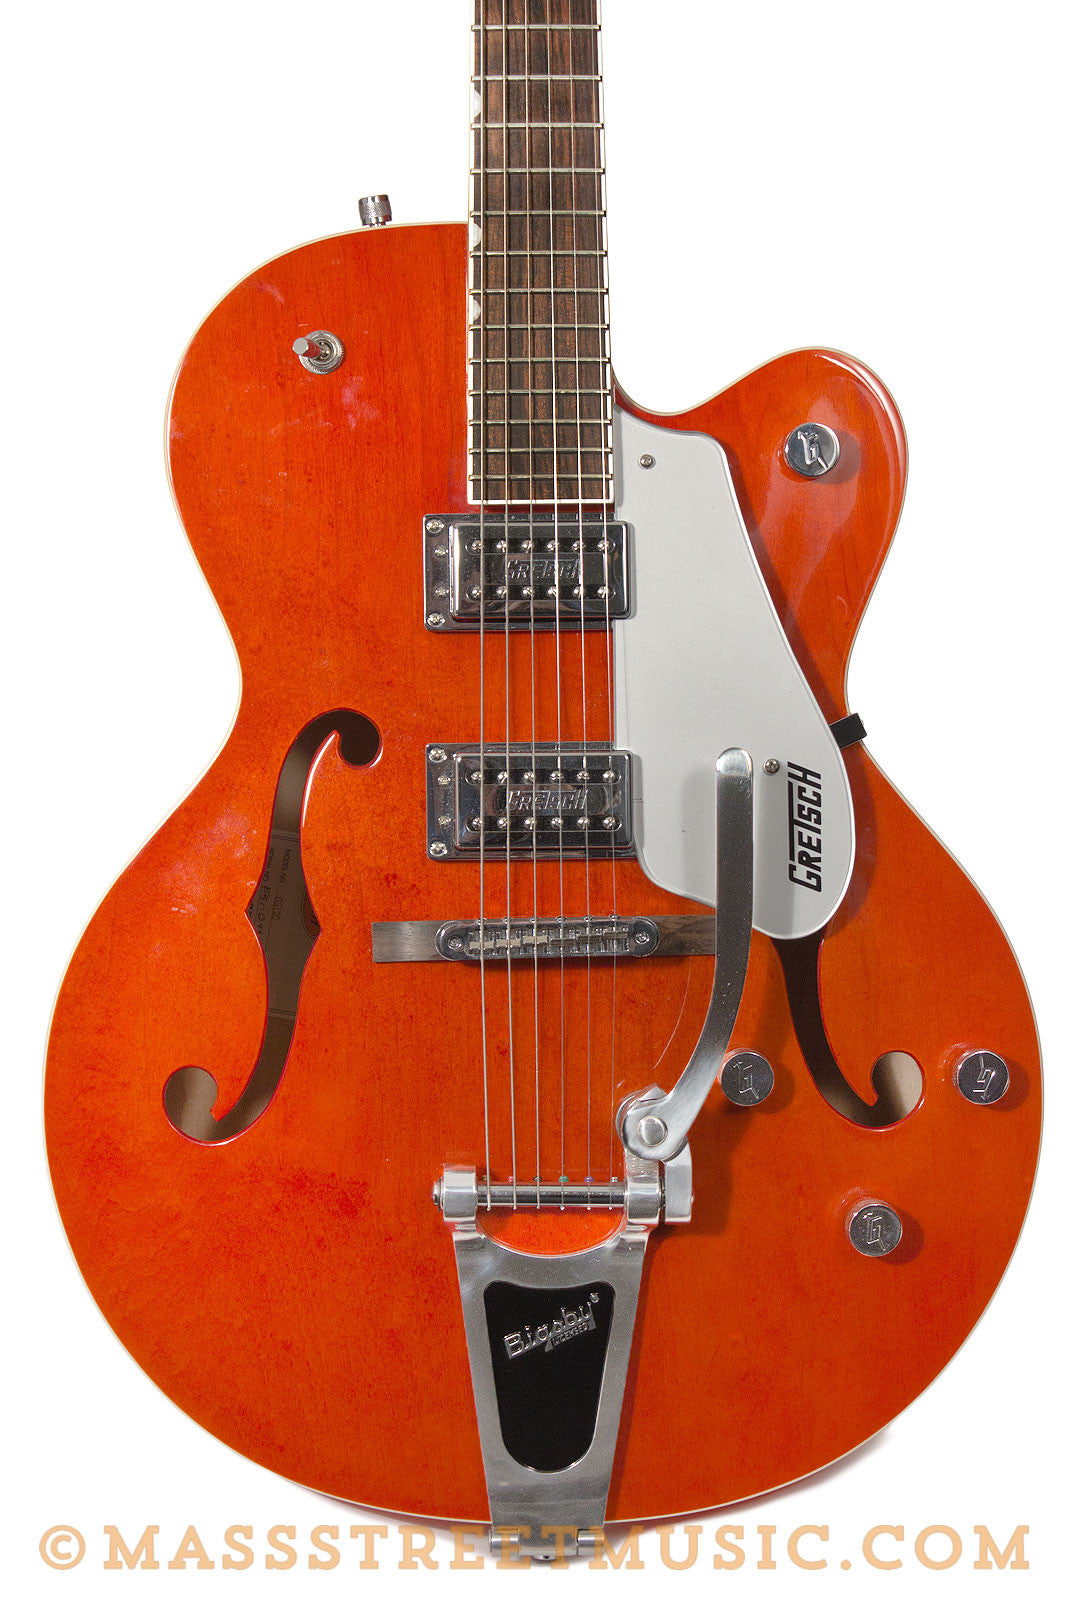 gretsch electromatic g5120 used electric guitar orange near mint mass street music store. Black Bedroom Furniture Sets. Home Design Ideas